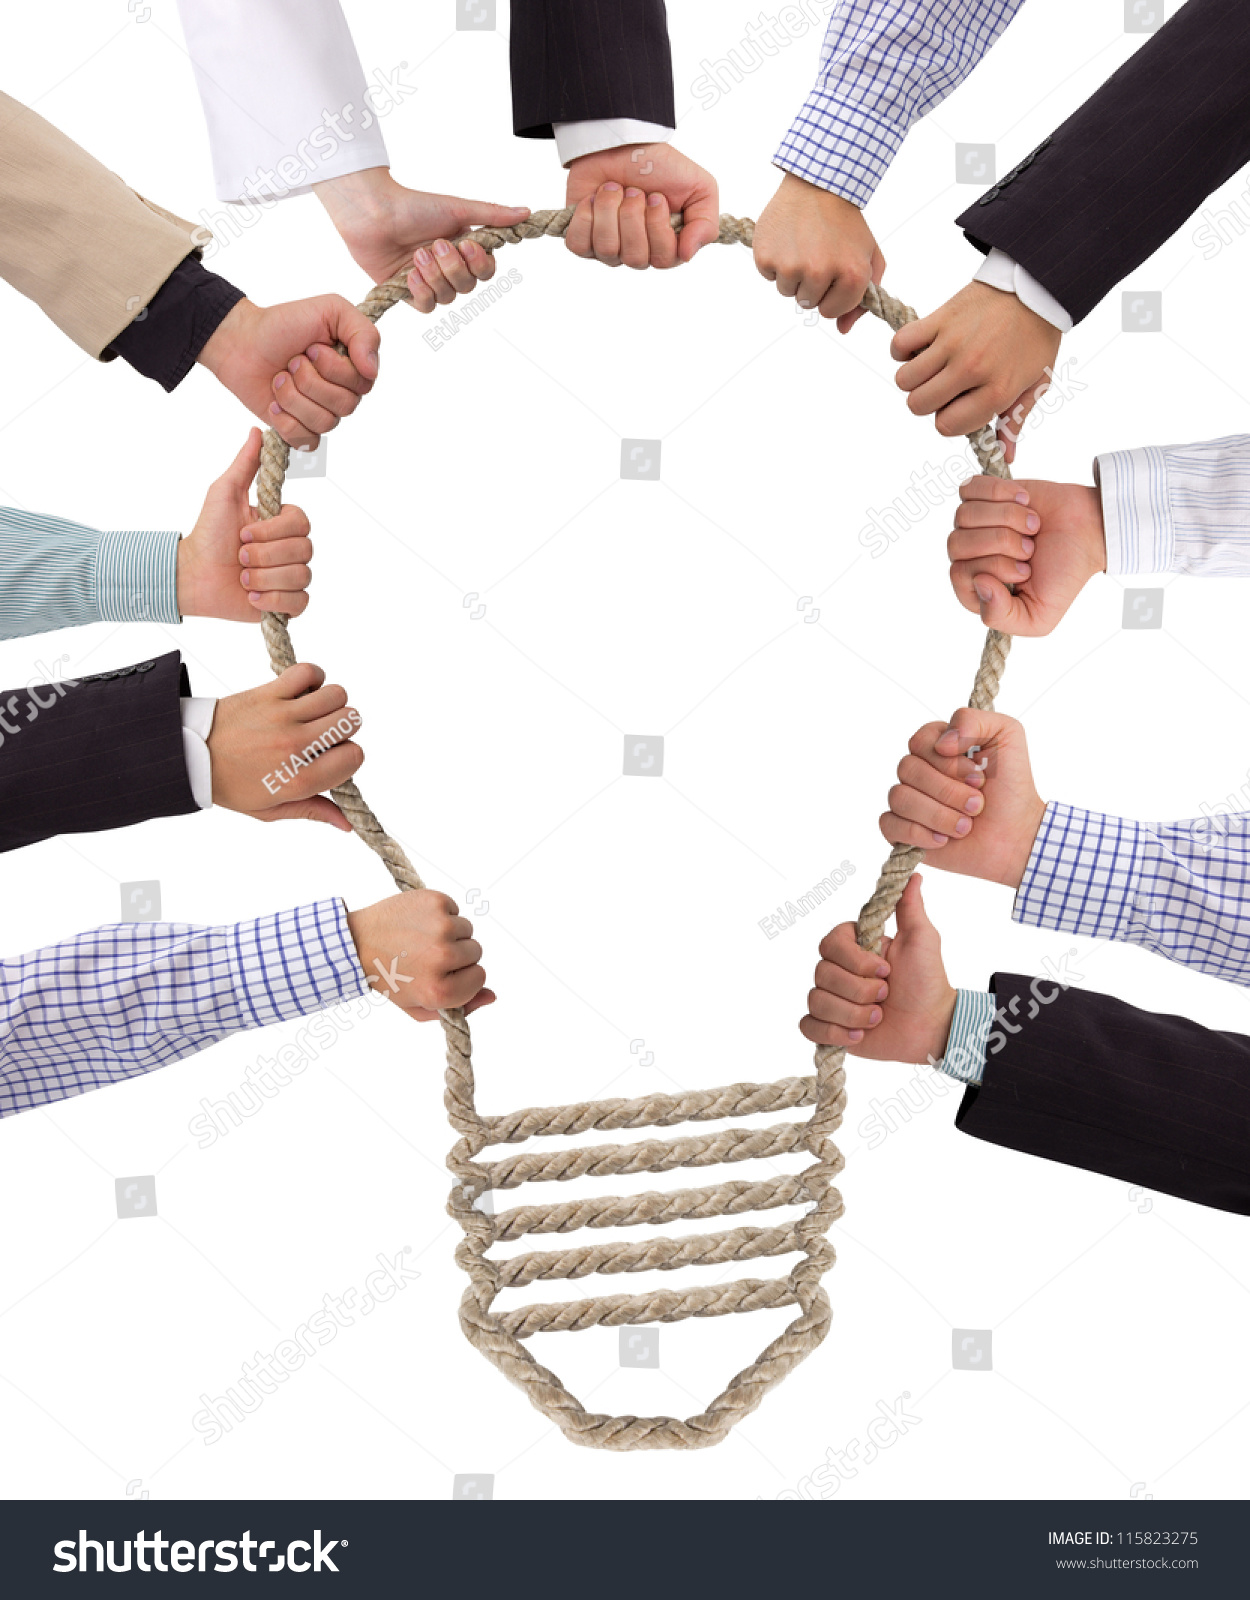 Technology Management Image: Business Hands Holding Rope Forming Bulb Stock Photo